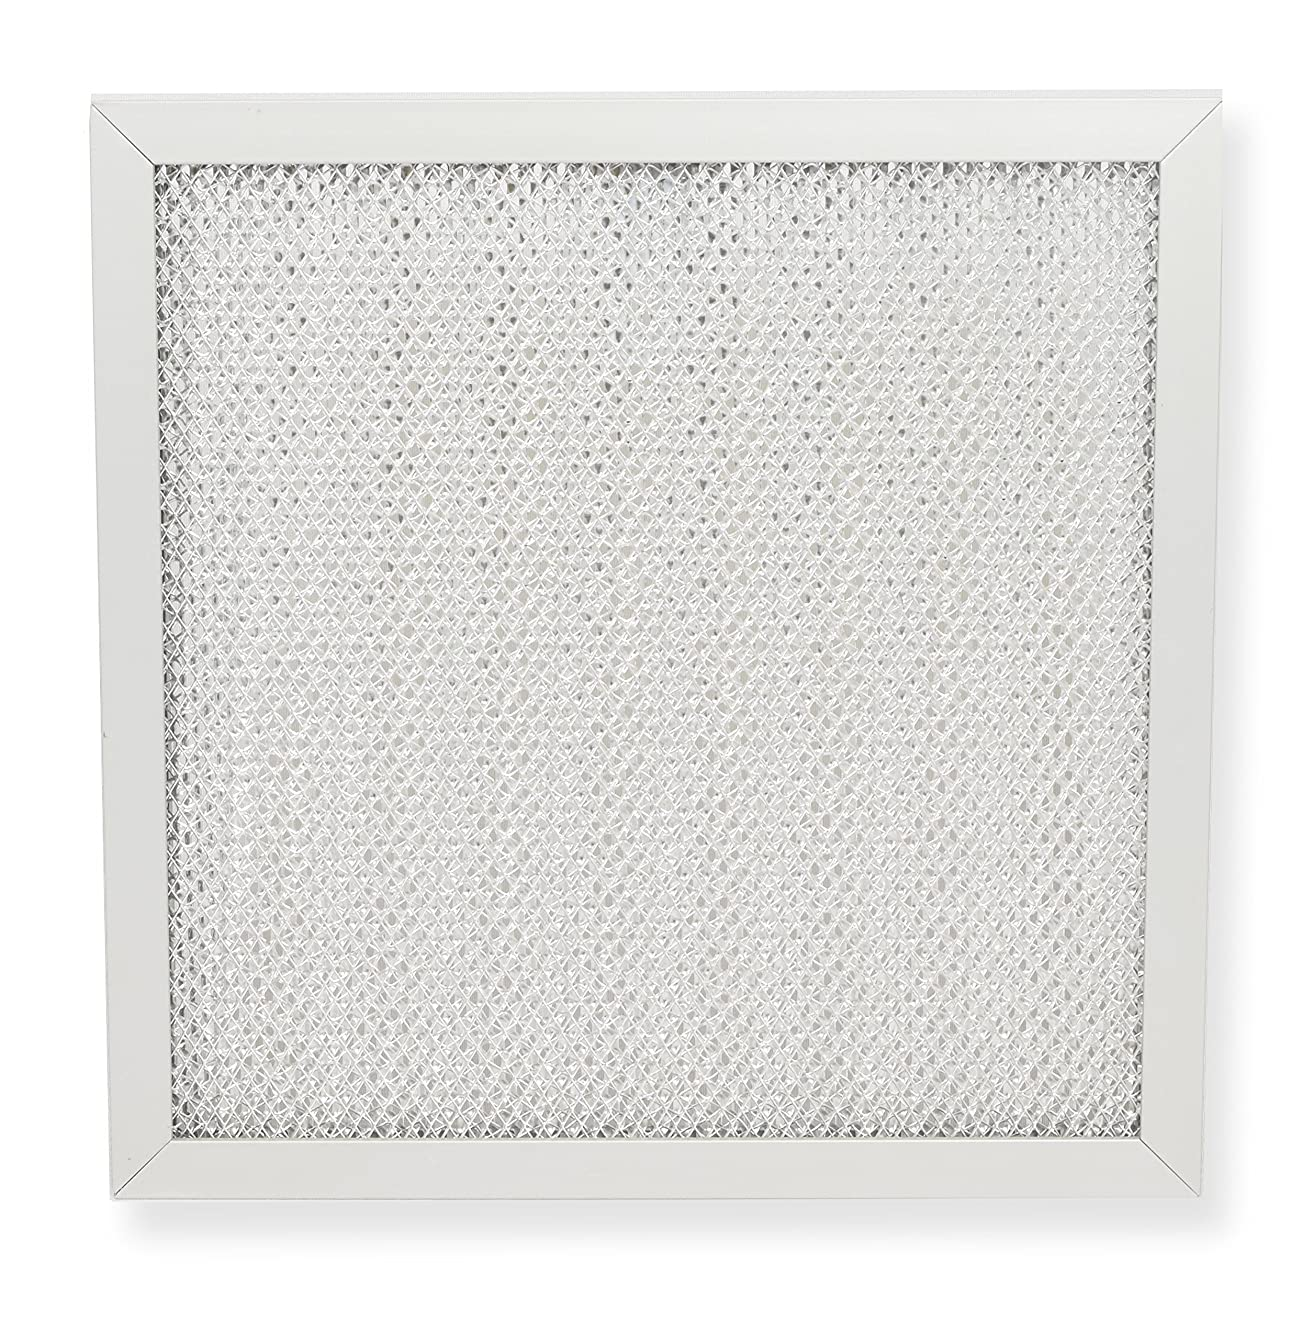 Ventline BCC024600 range hood filter, 8 X 8, Fits also to 53028, VNF-ZM03